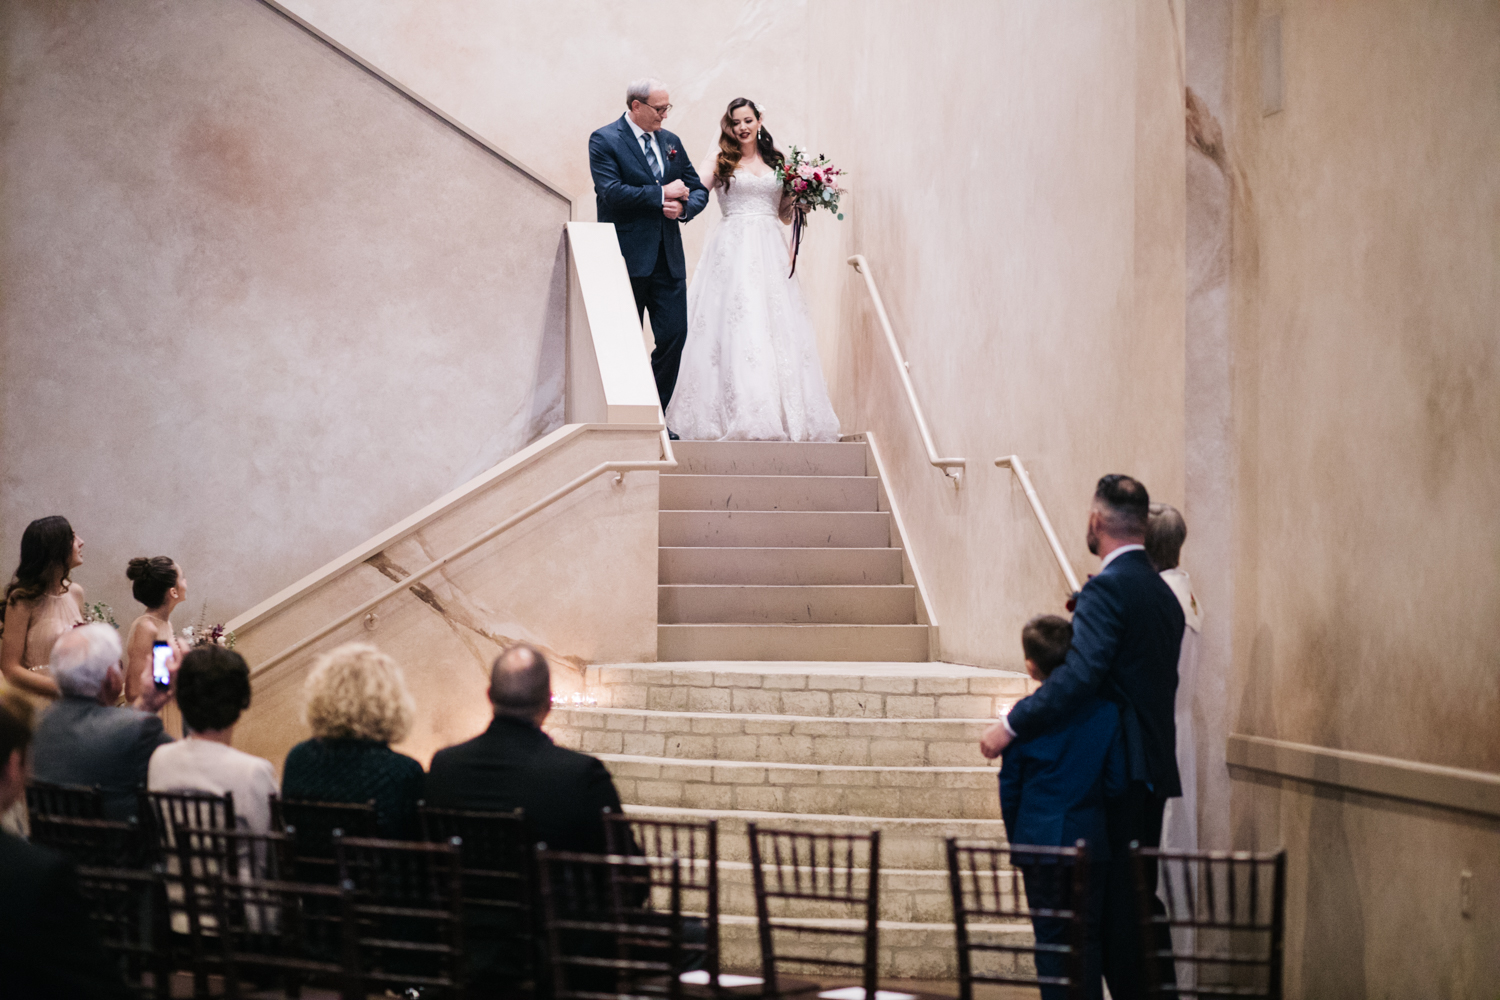 Bride coming down long staircase with her father.